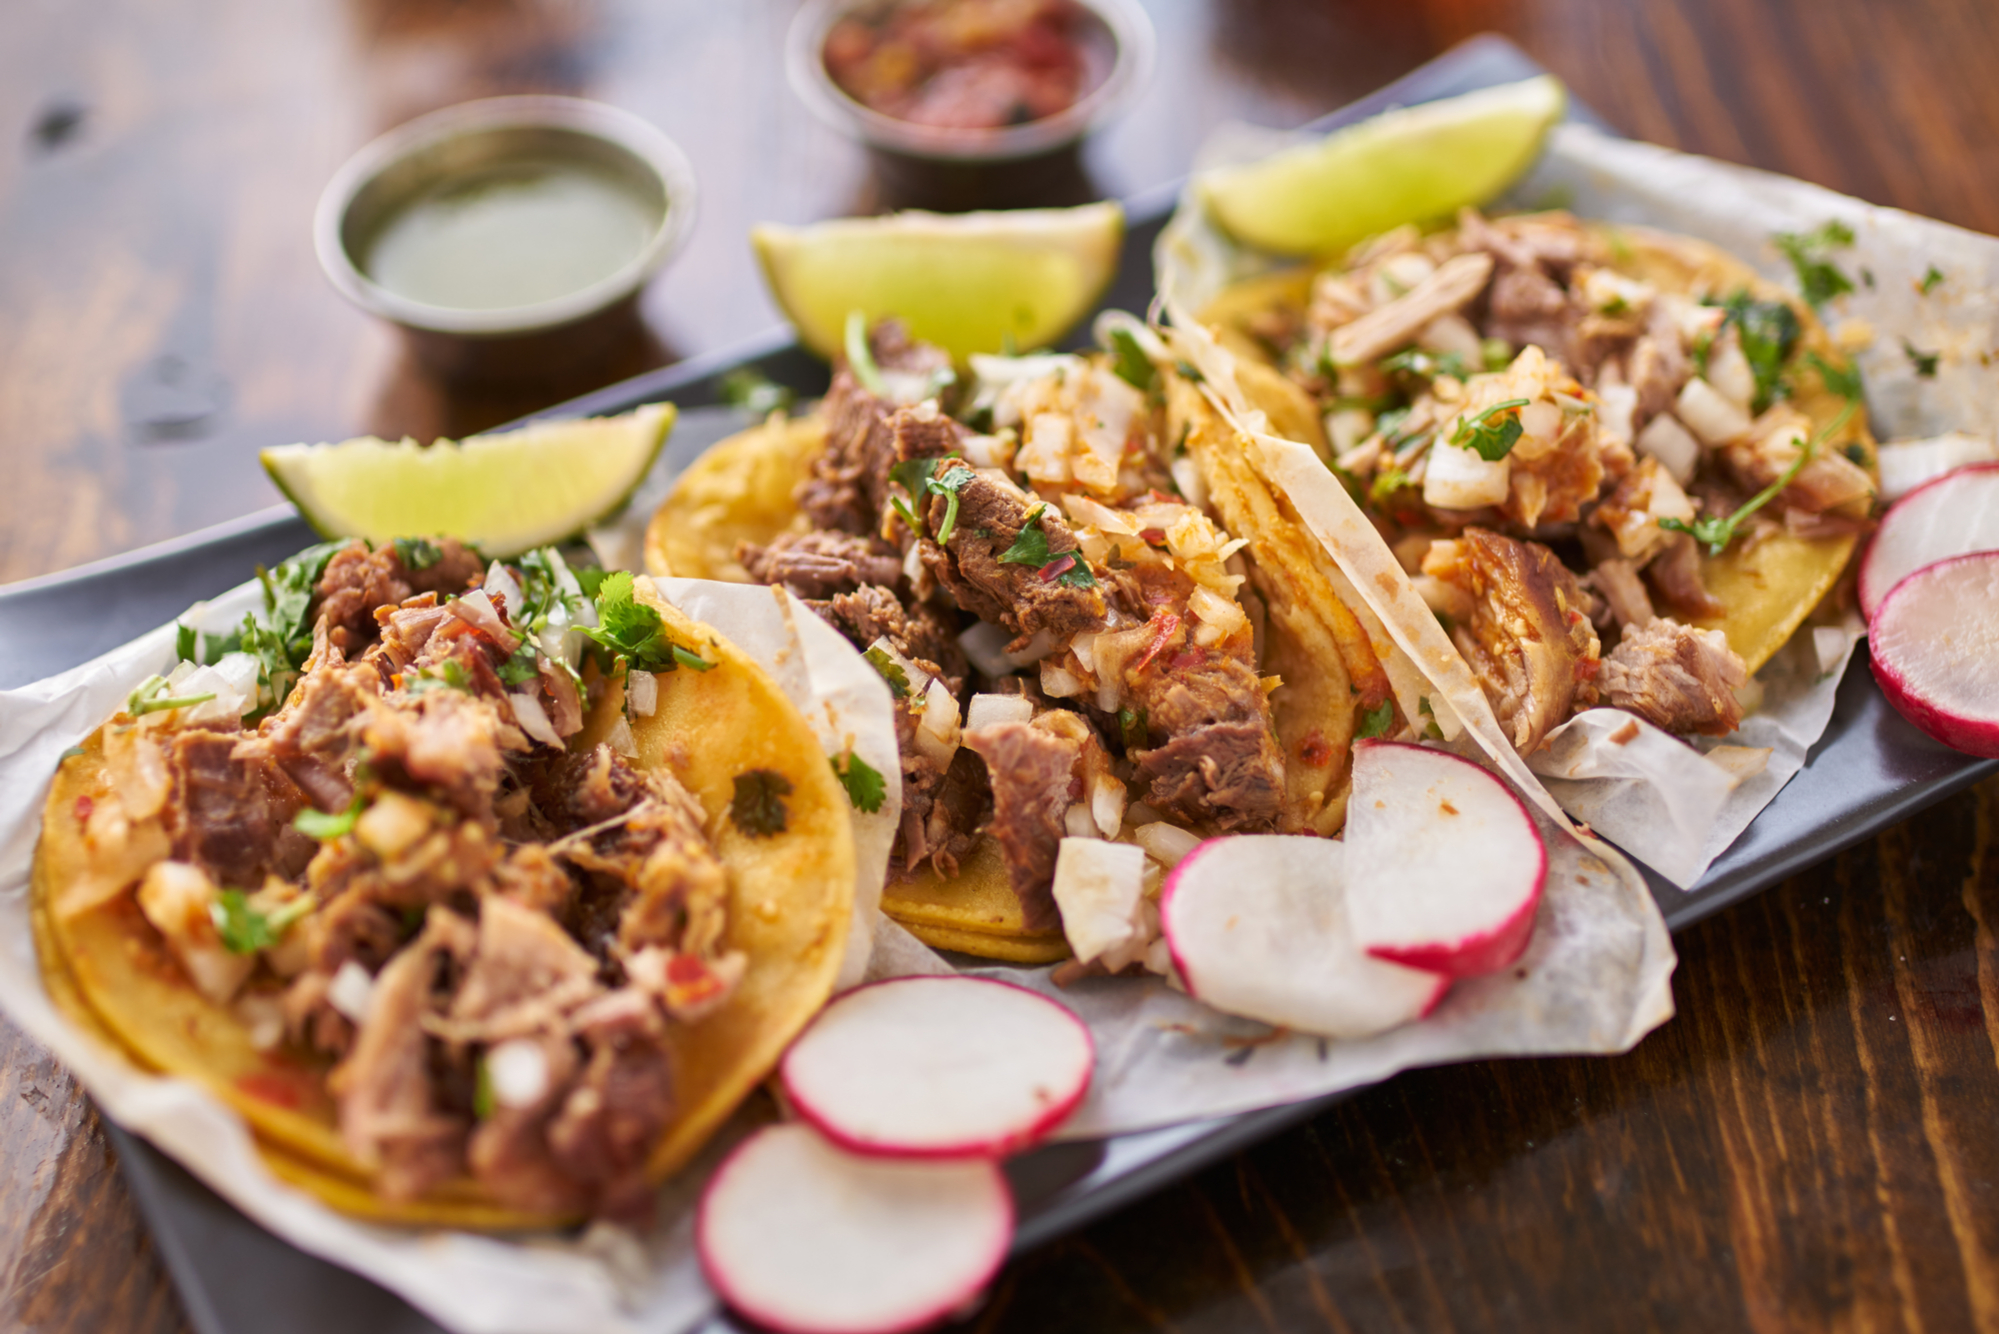 Where to Go for Taco Tuesday in La Jolla